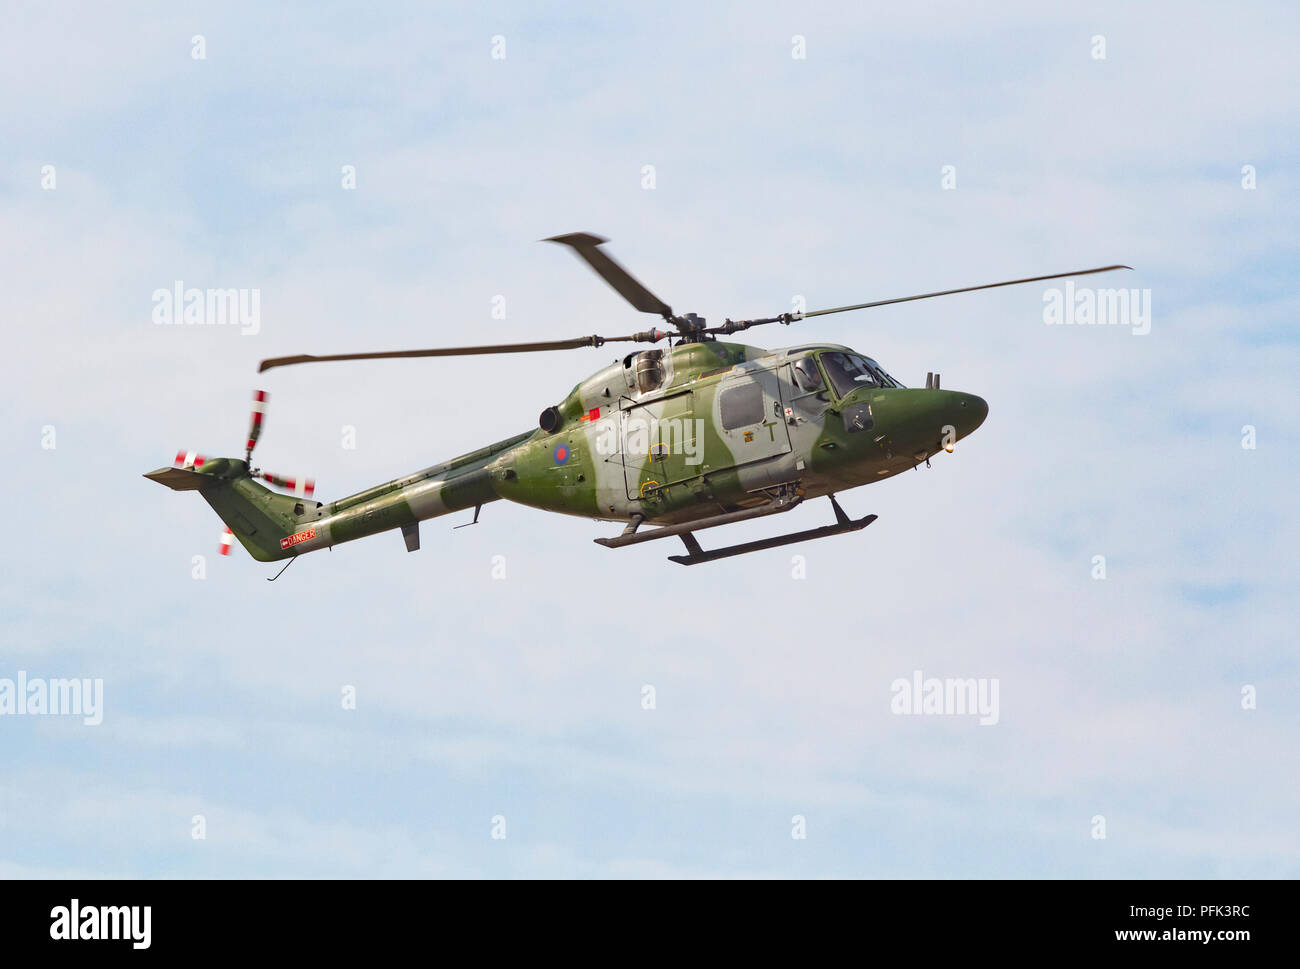 Army Air Corps Westland Lynx Helicopter at Southport Air Show - Stock Image